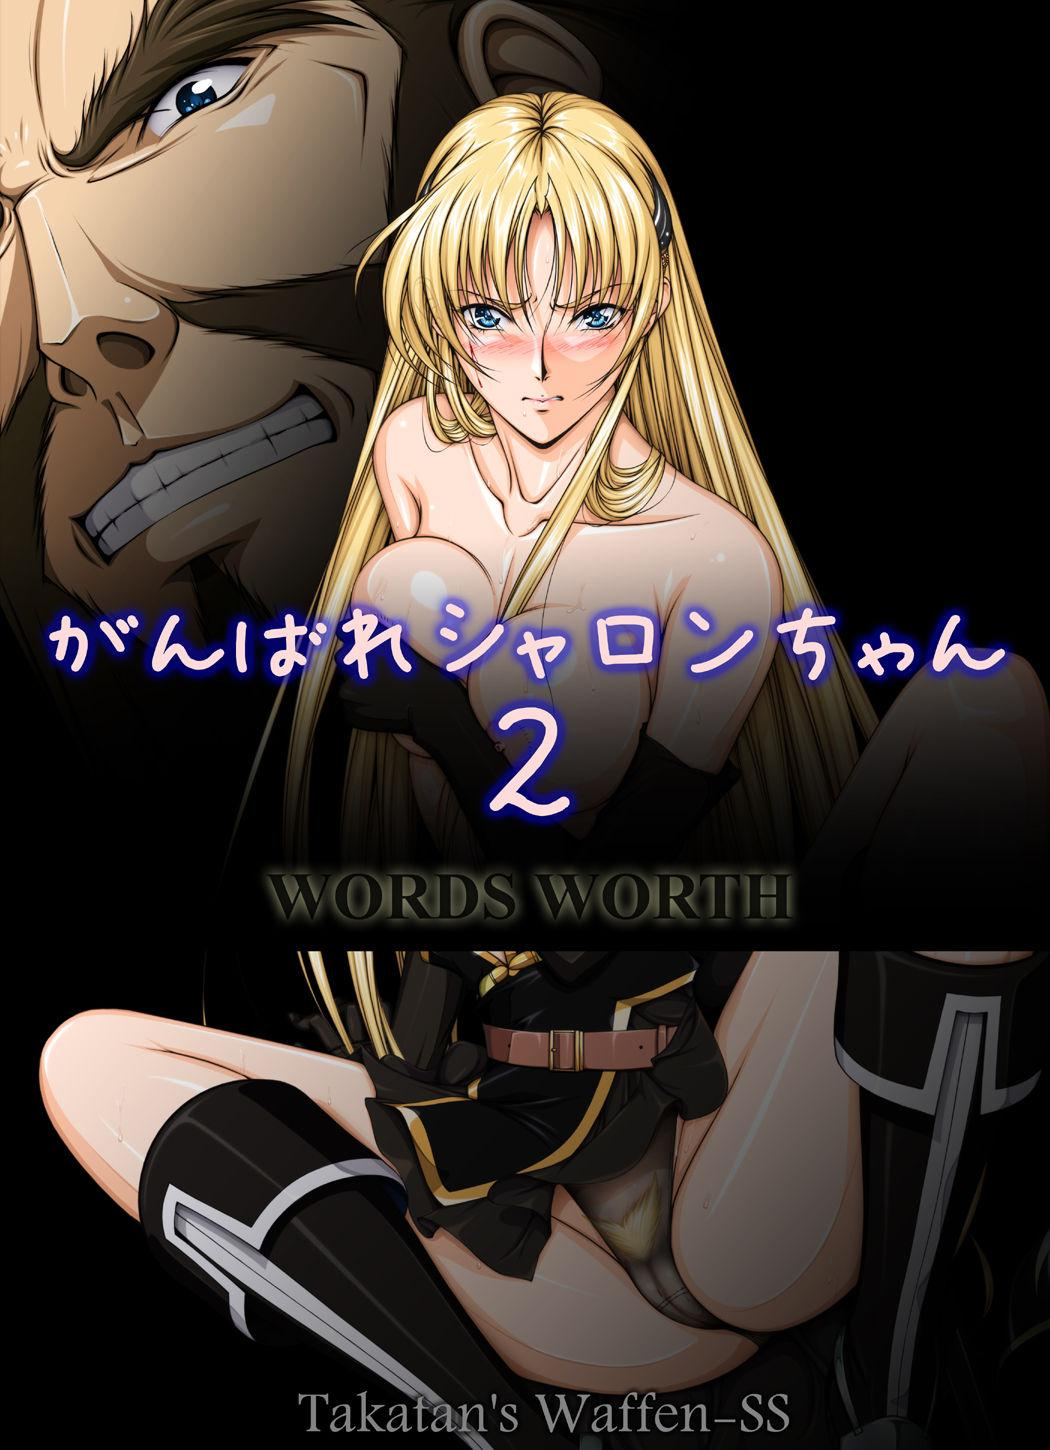 [Takatan's Waffen-SS] Fight, Sharon! 2 [Deluxe Edition] (Words Worth) +omake 334